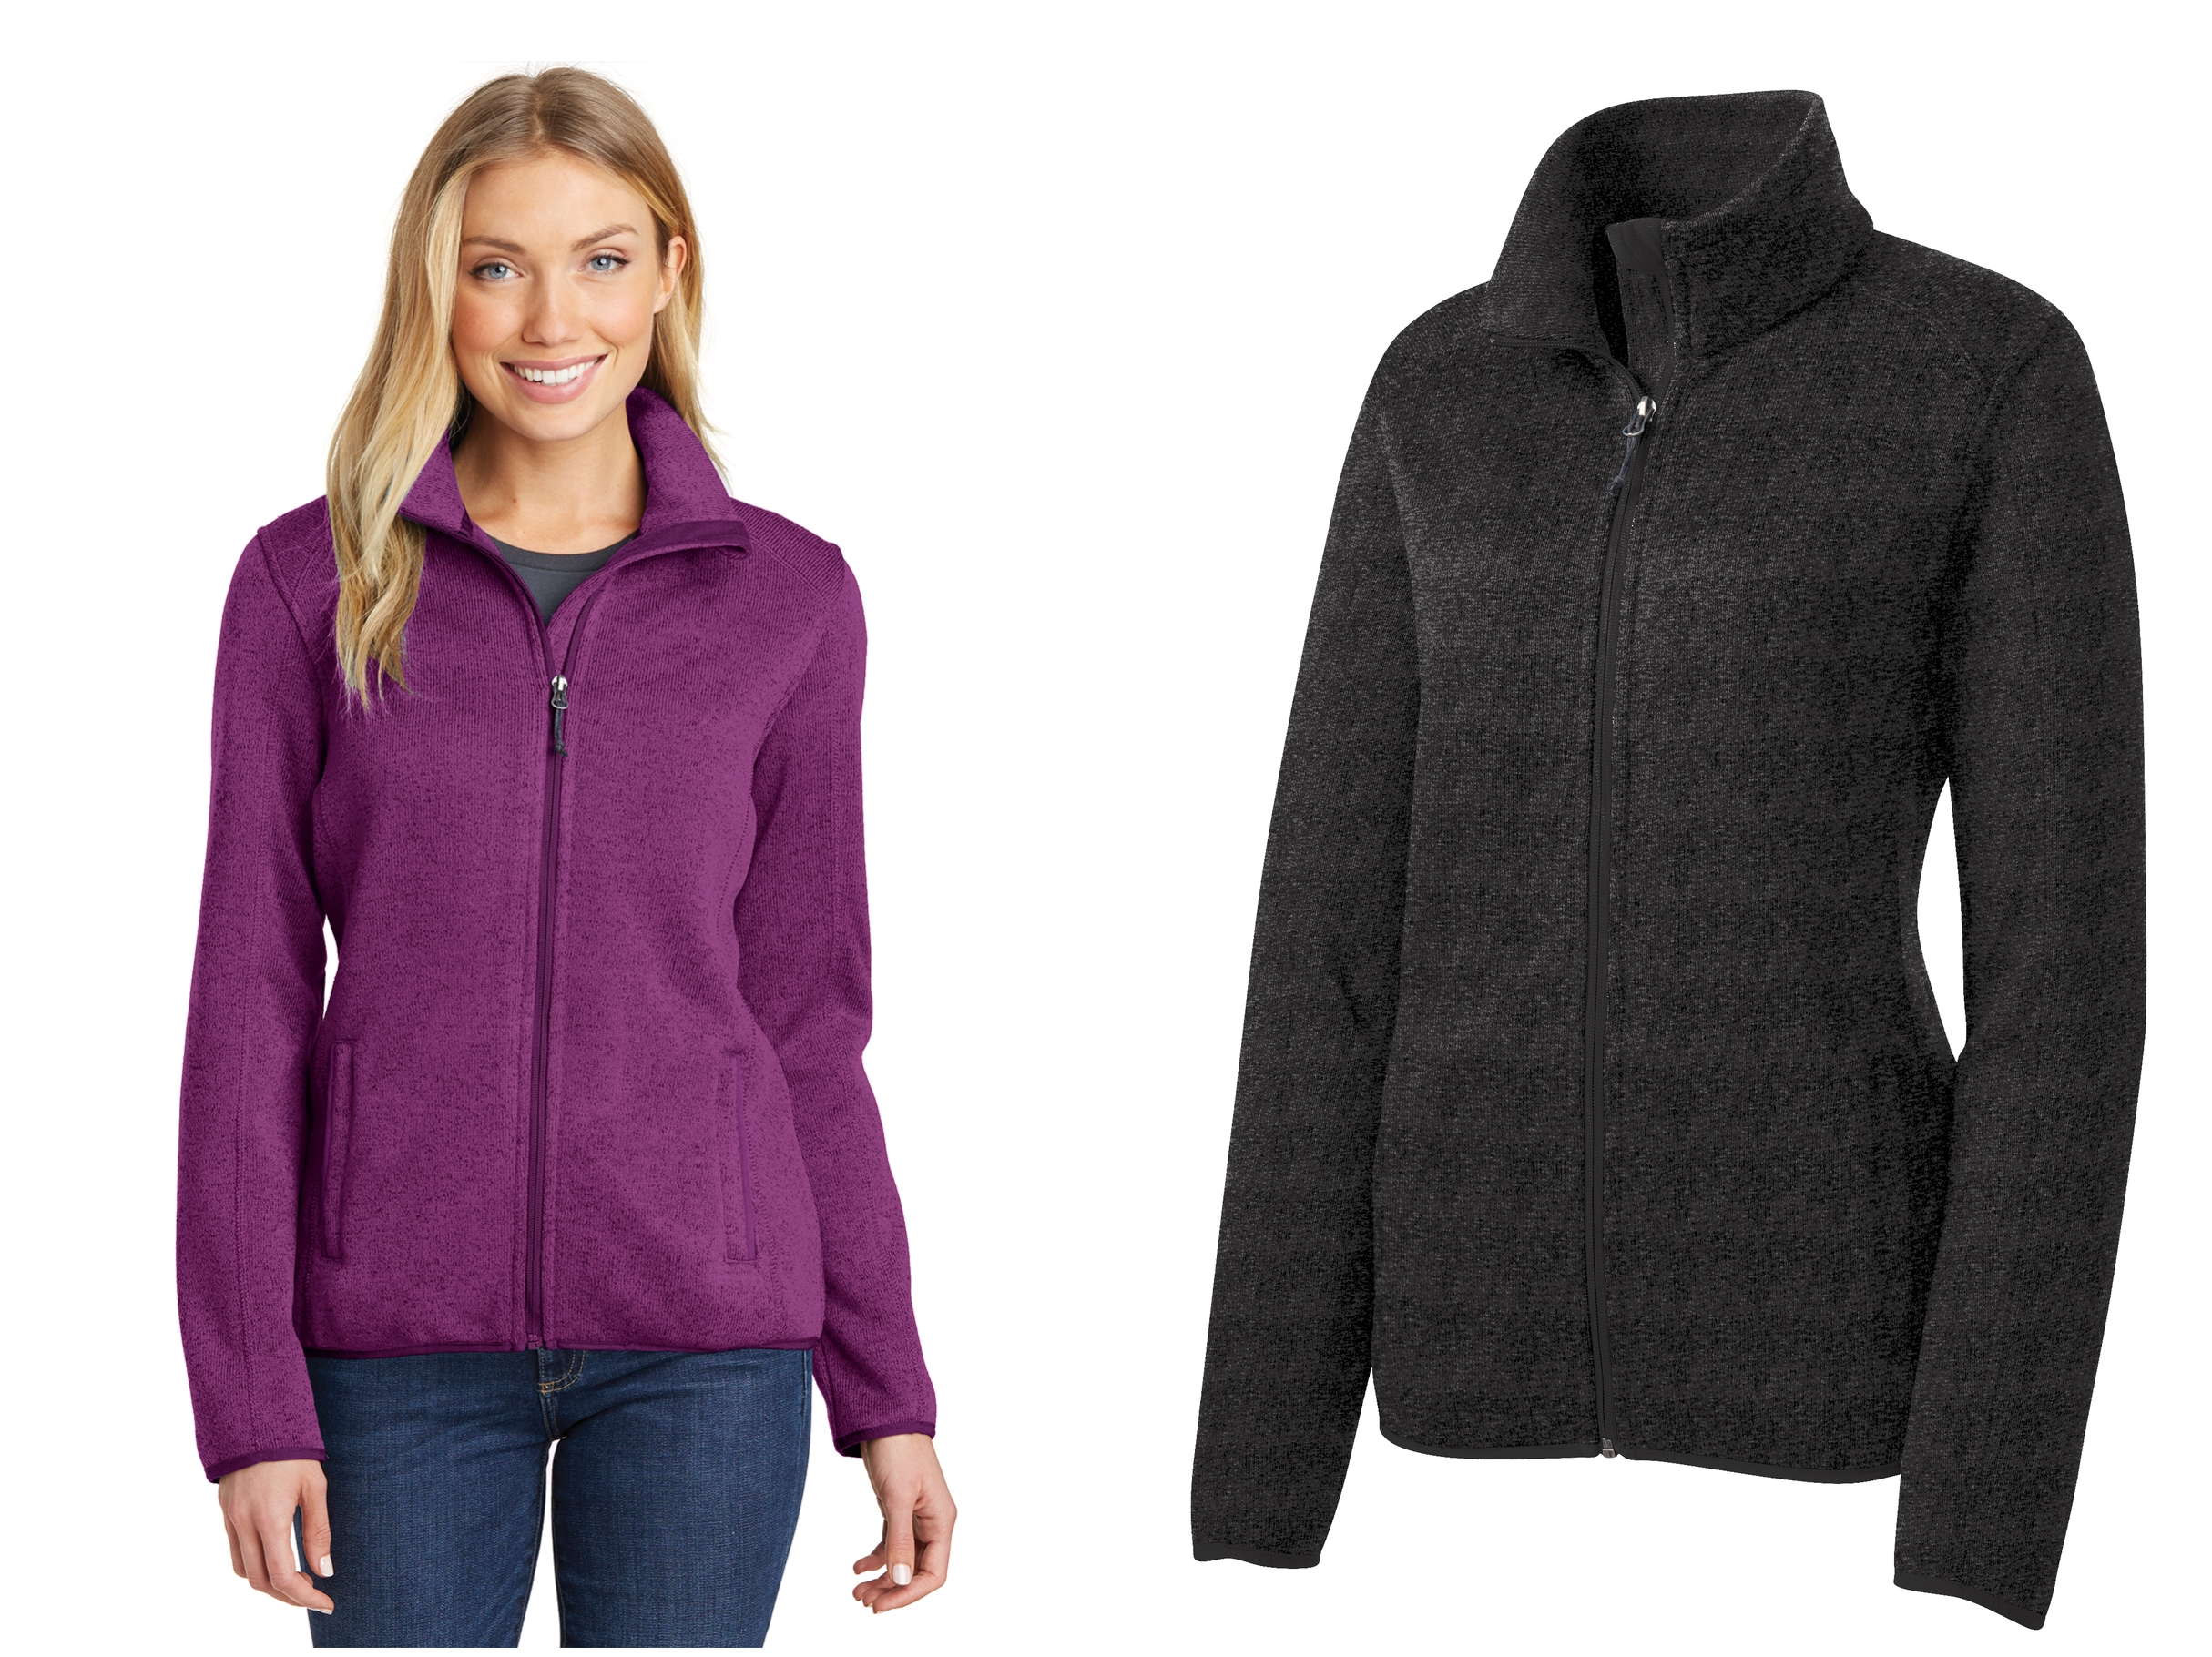 Port Authority L232 Ladies Sweater Fleece Jacket from NYFifth